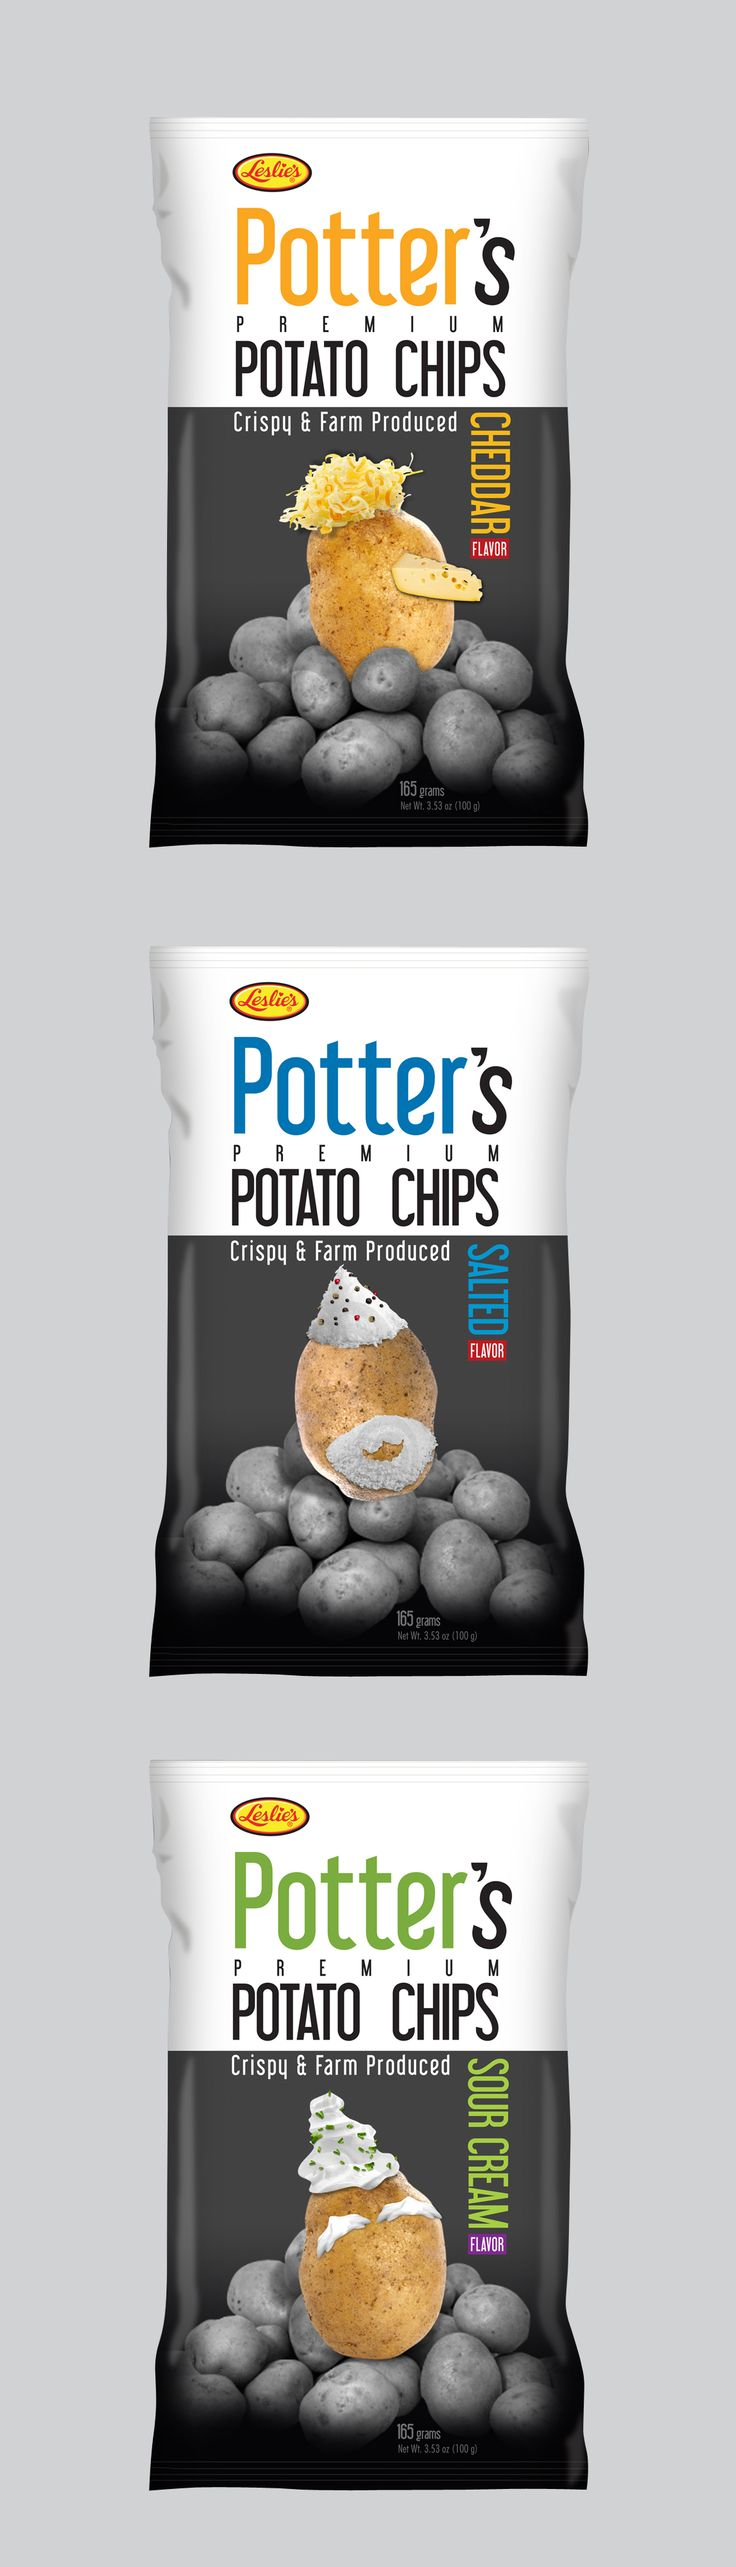 Potato chips packaging design concept that never made it to the shelves. a 2011 concept that I like until now. PD